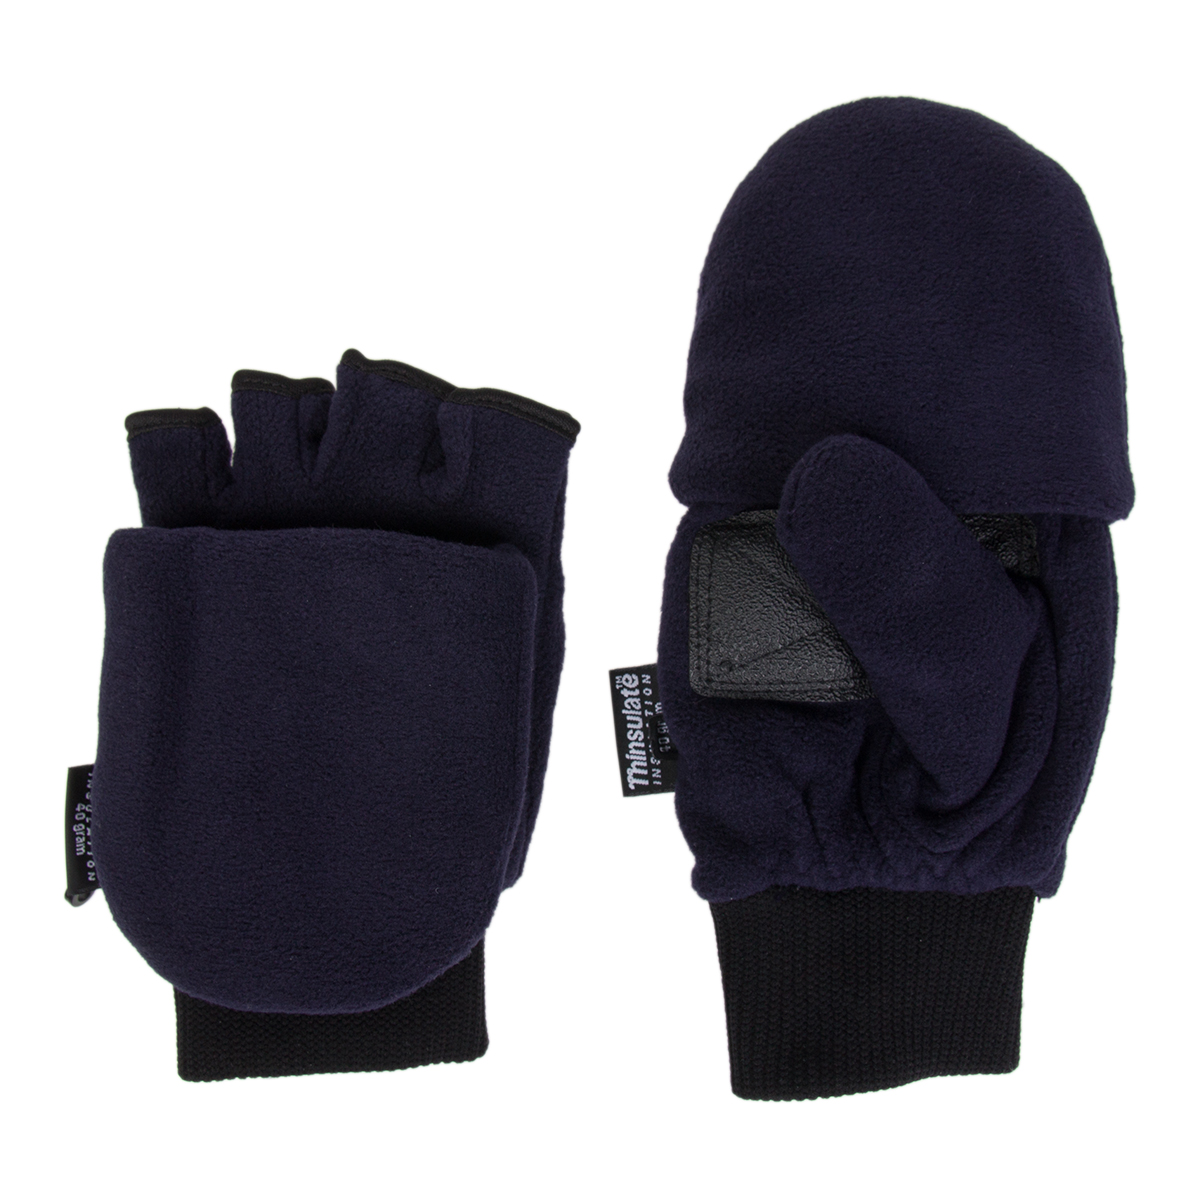 Buy Metog Suede Thinsulate Thermal Insulation Mittens, Gloves: Korlon Winter Warm Wool Knitted Convertible Gloves Mittens with Mitten Cover out of 5 stars $ Eianru New Winter Knitted Suede Thinsulate Thermal Insulation Mittens Gloves out of 5 stars $/5().